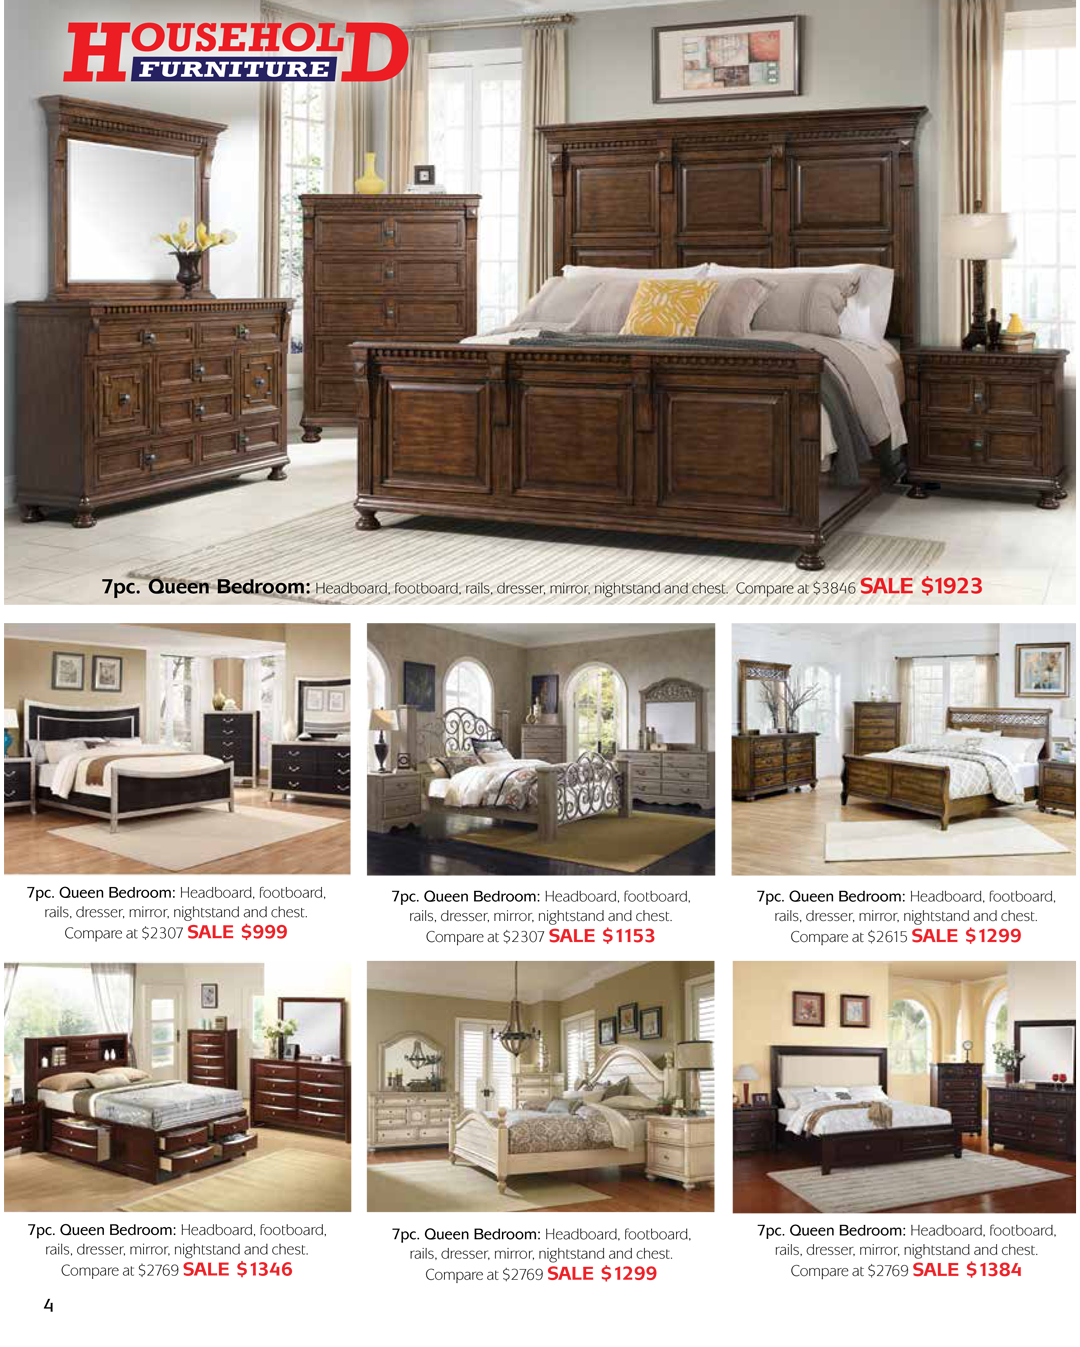 Grand Opening Sale Household Furniture